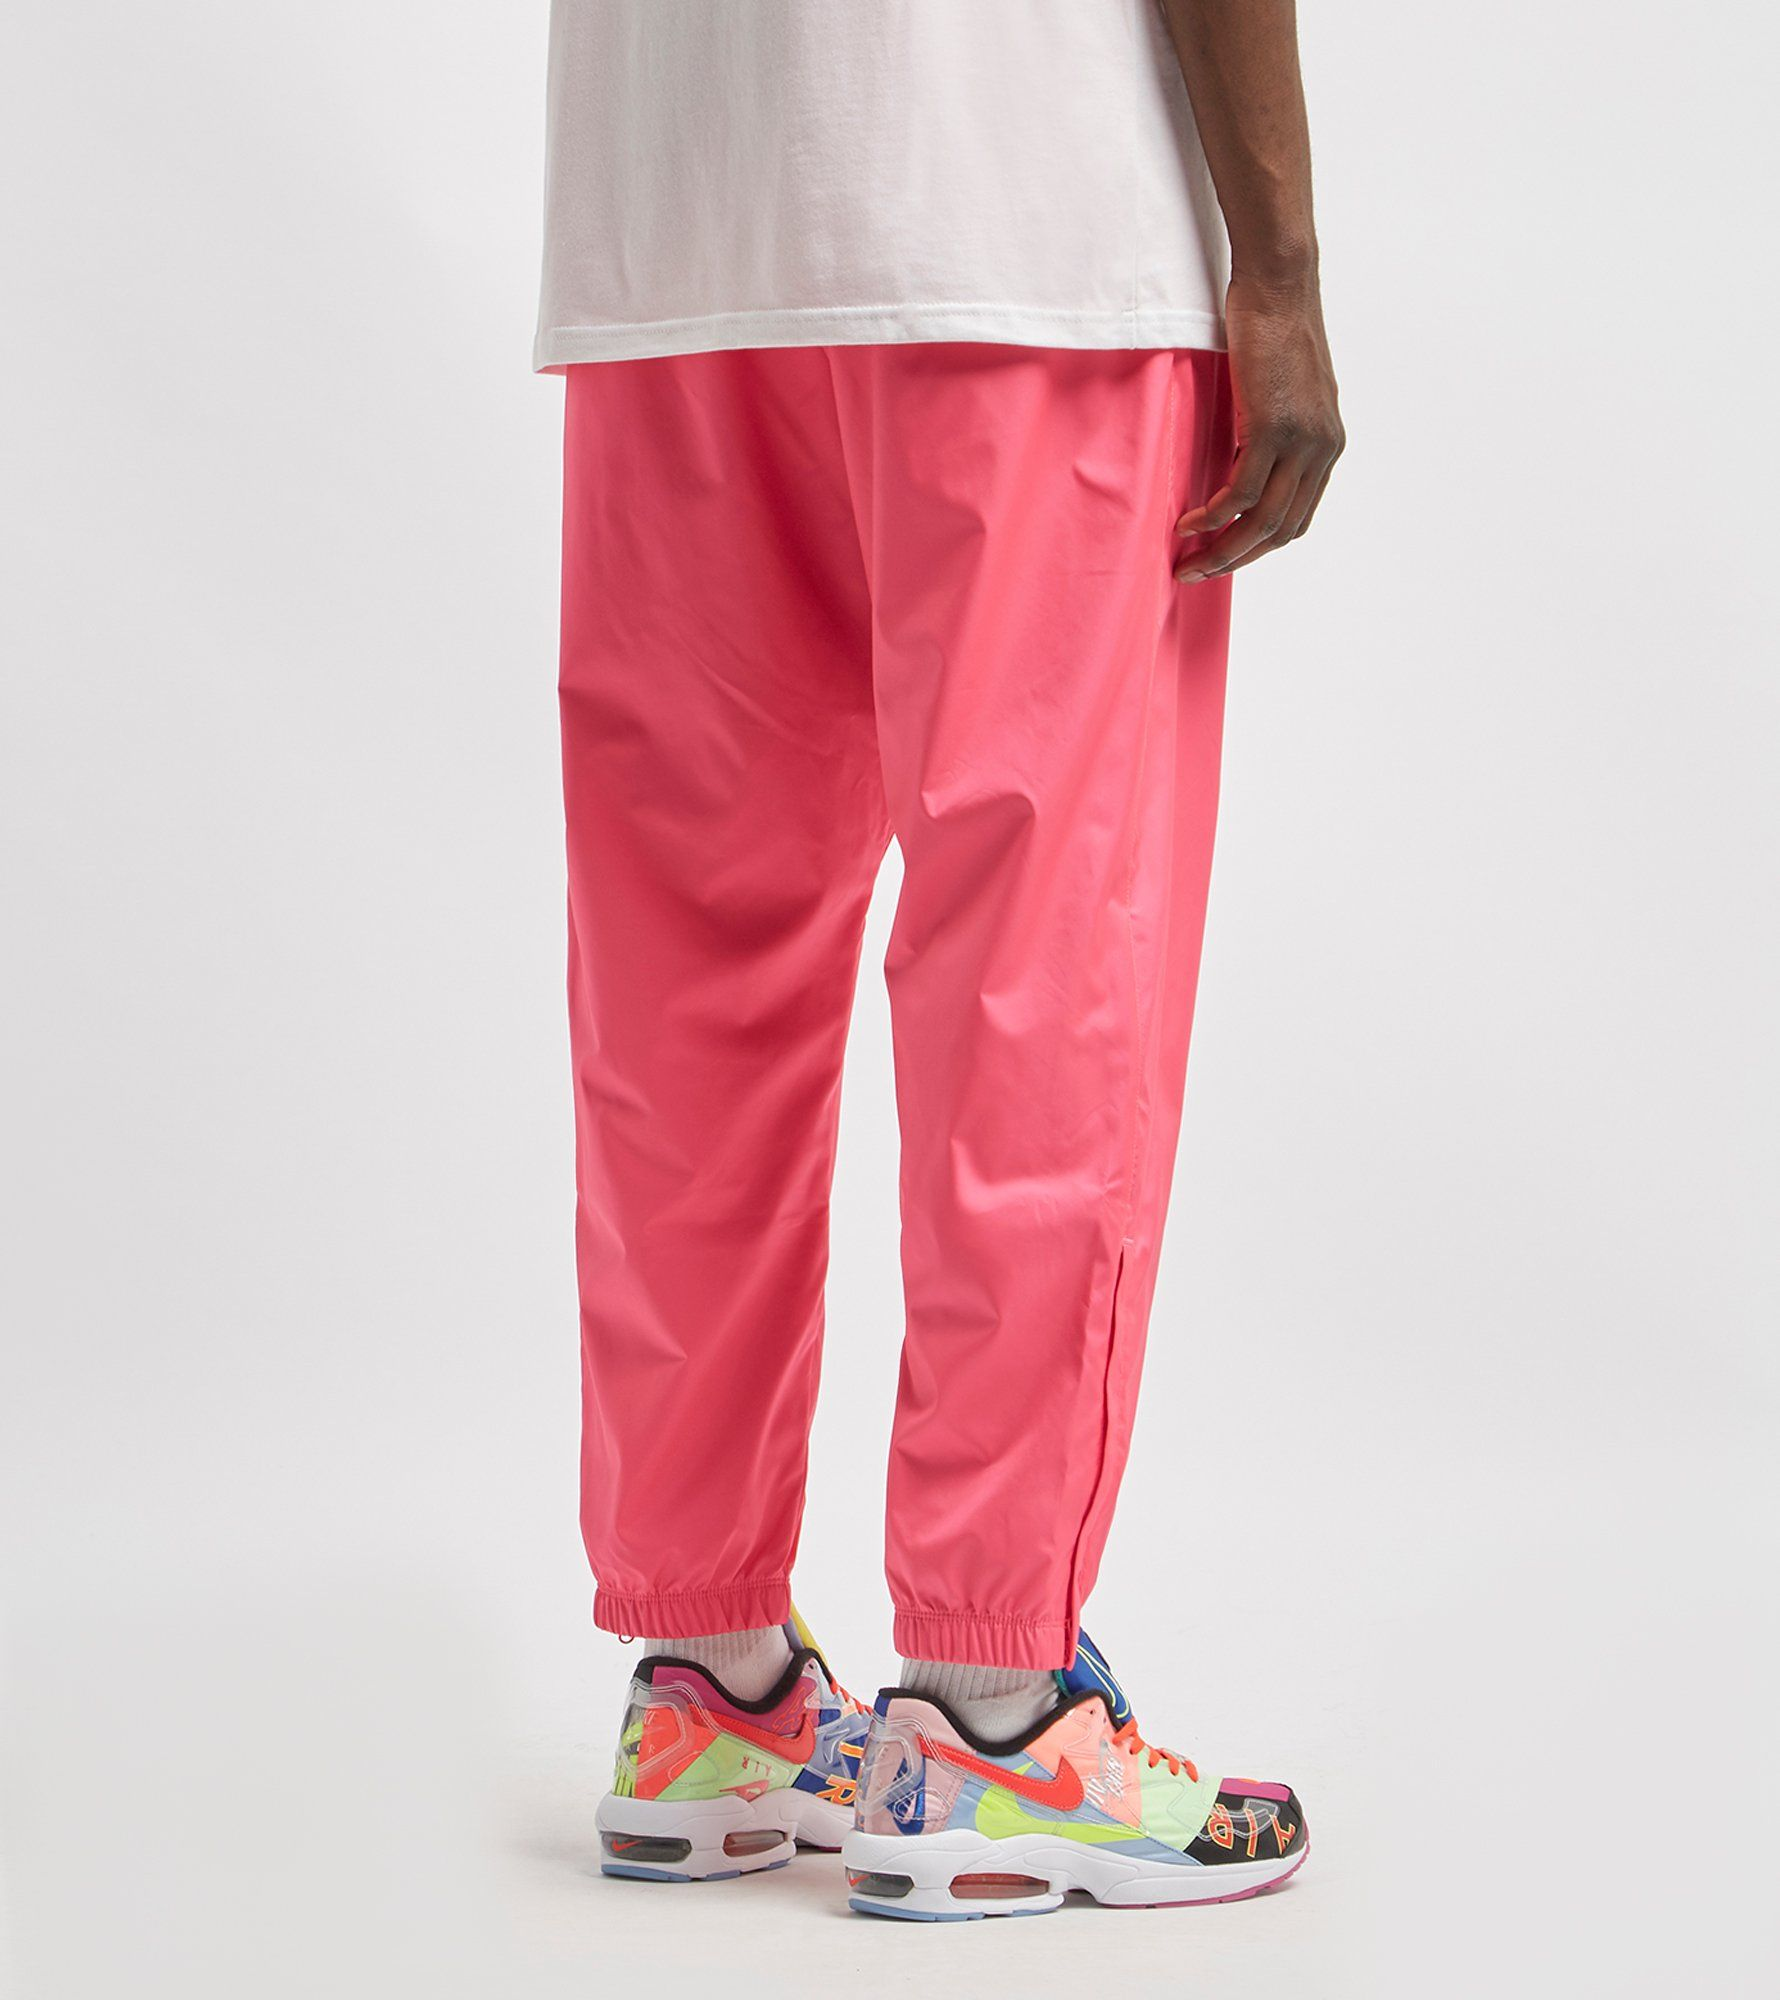 Nike x atmos Patchwork Track Pants